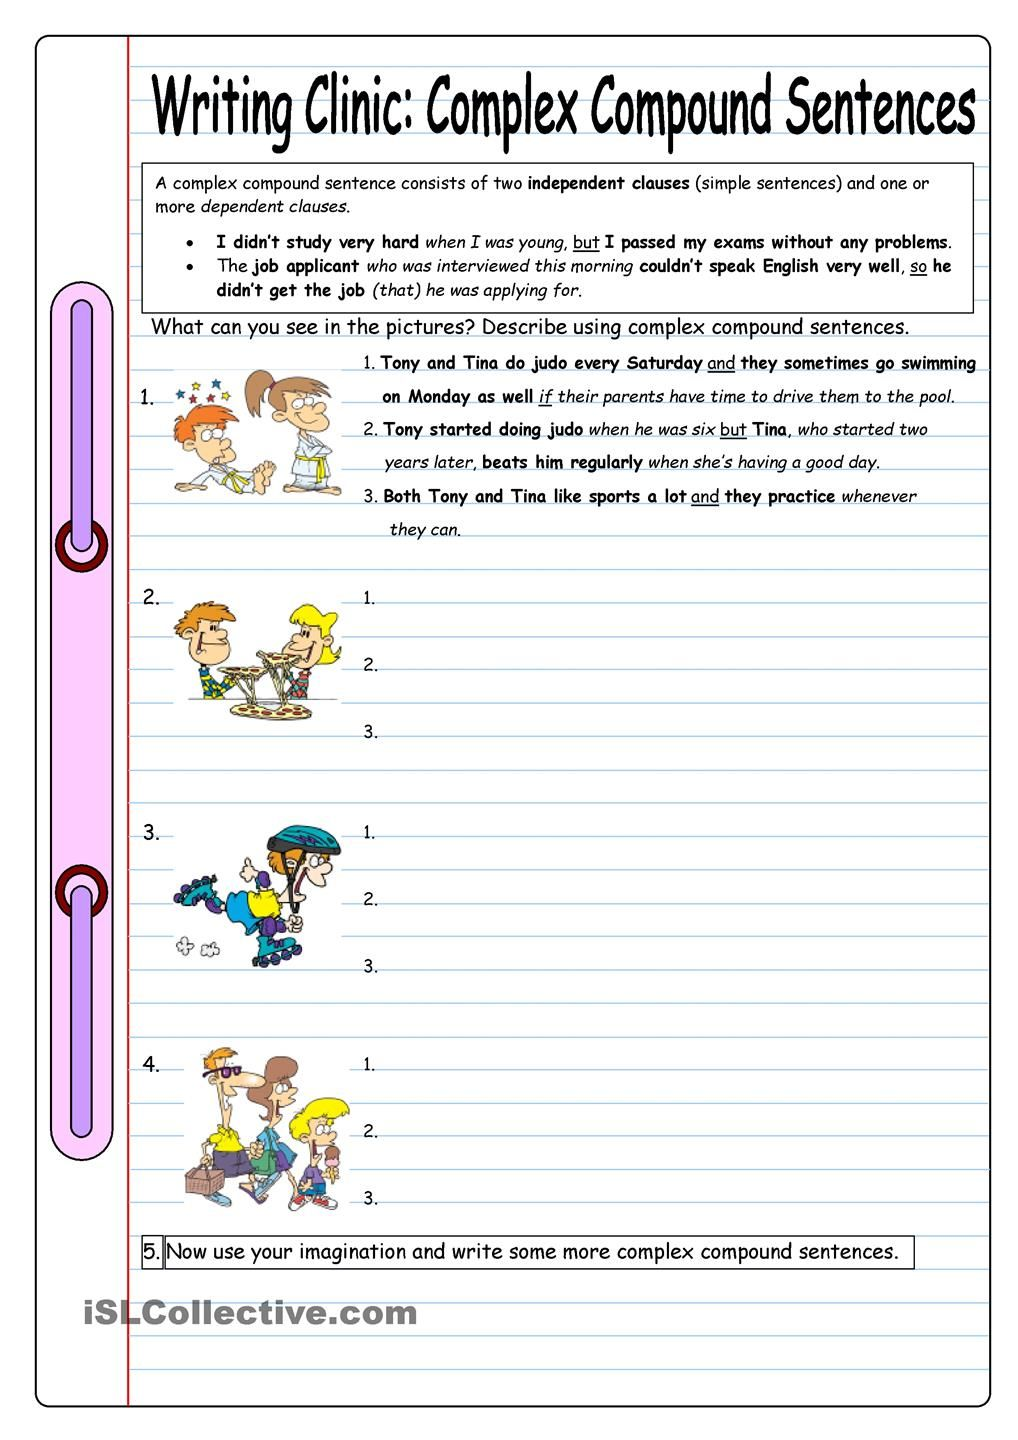 Writing Clinic: Complex Compound Sentences | School | Pinterest ...